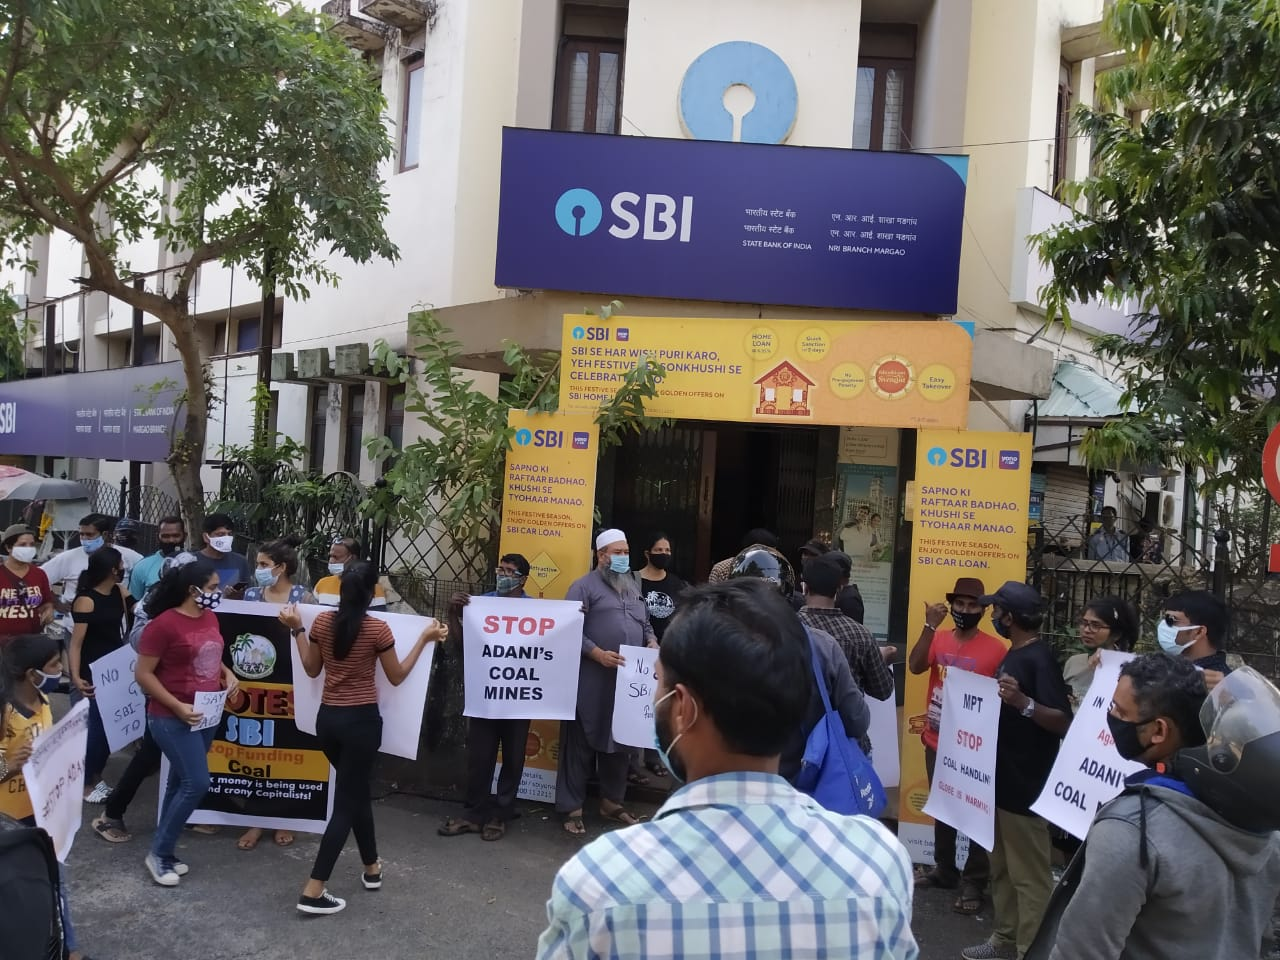 Saving Goa and Australia from Adani, protesters outside the SBI in Goa